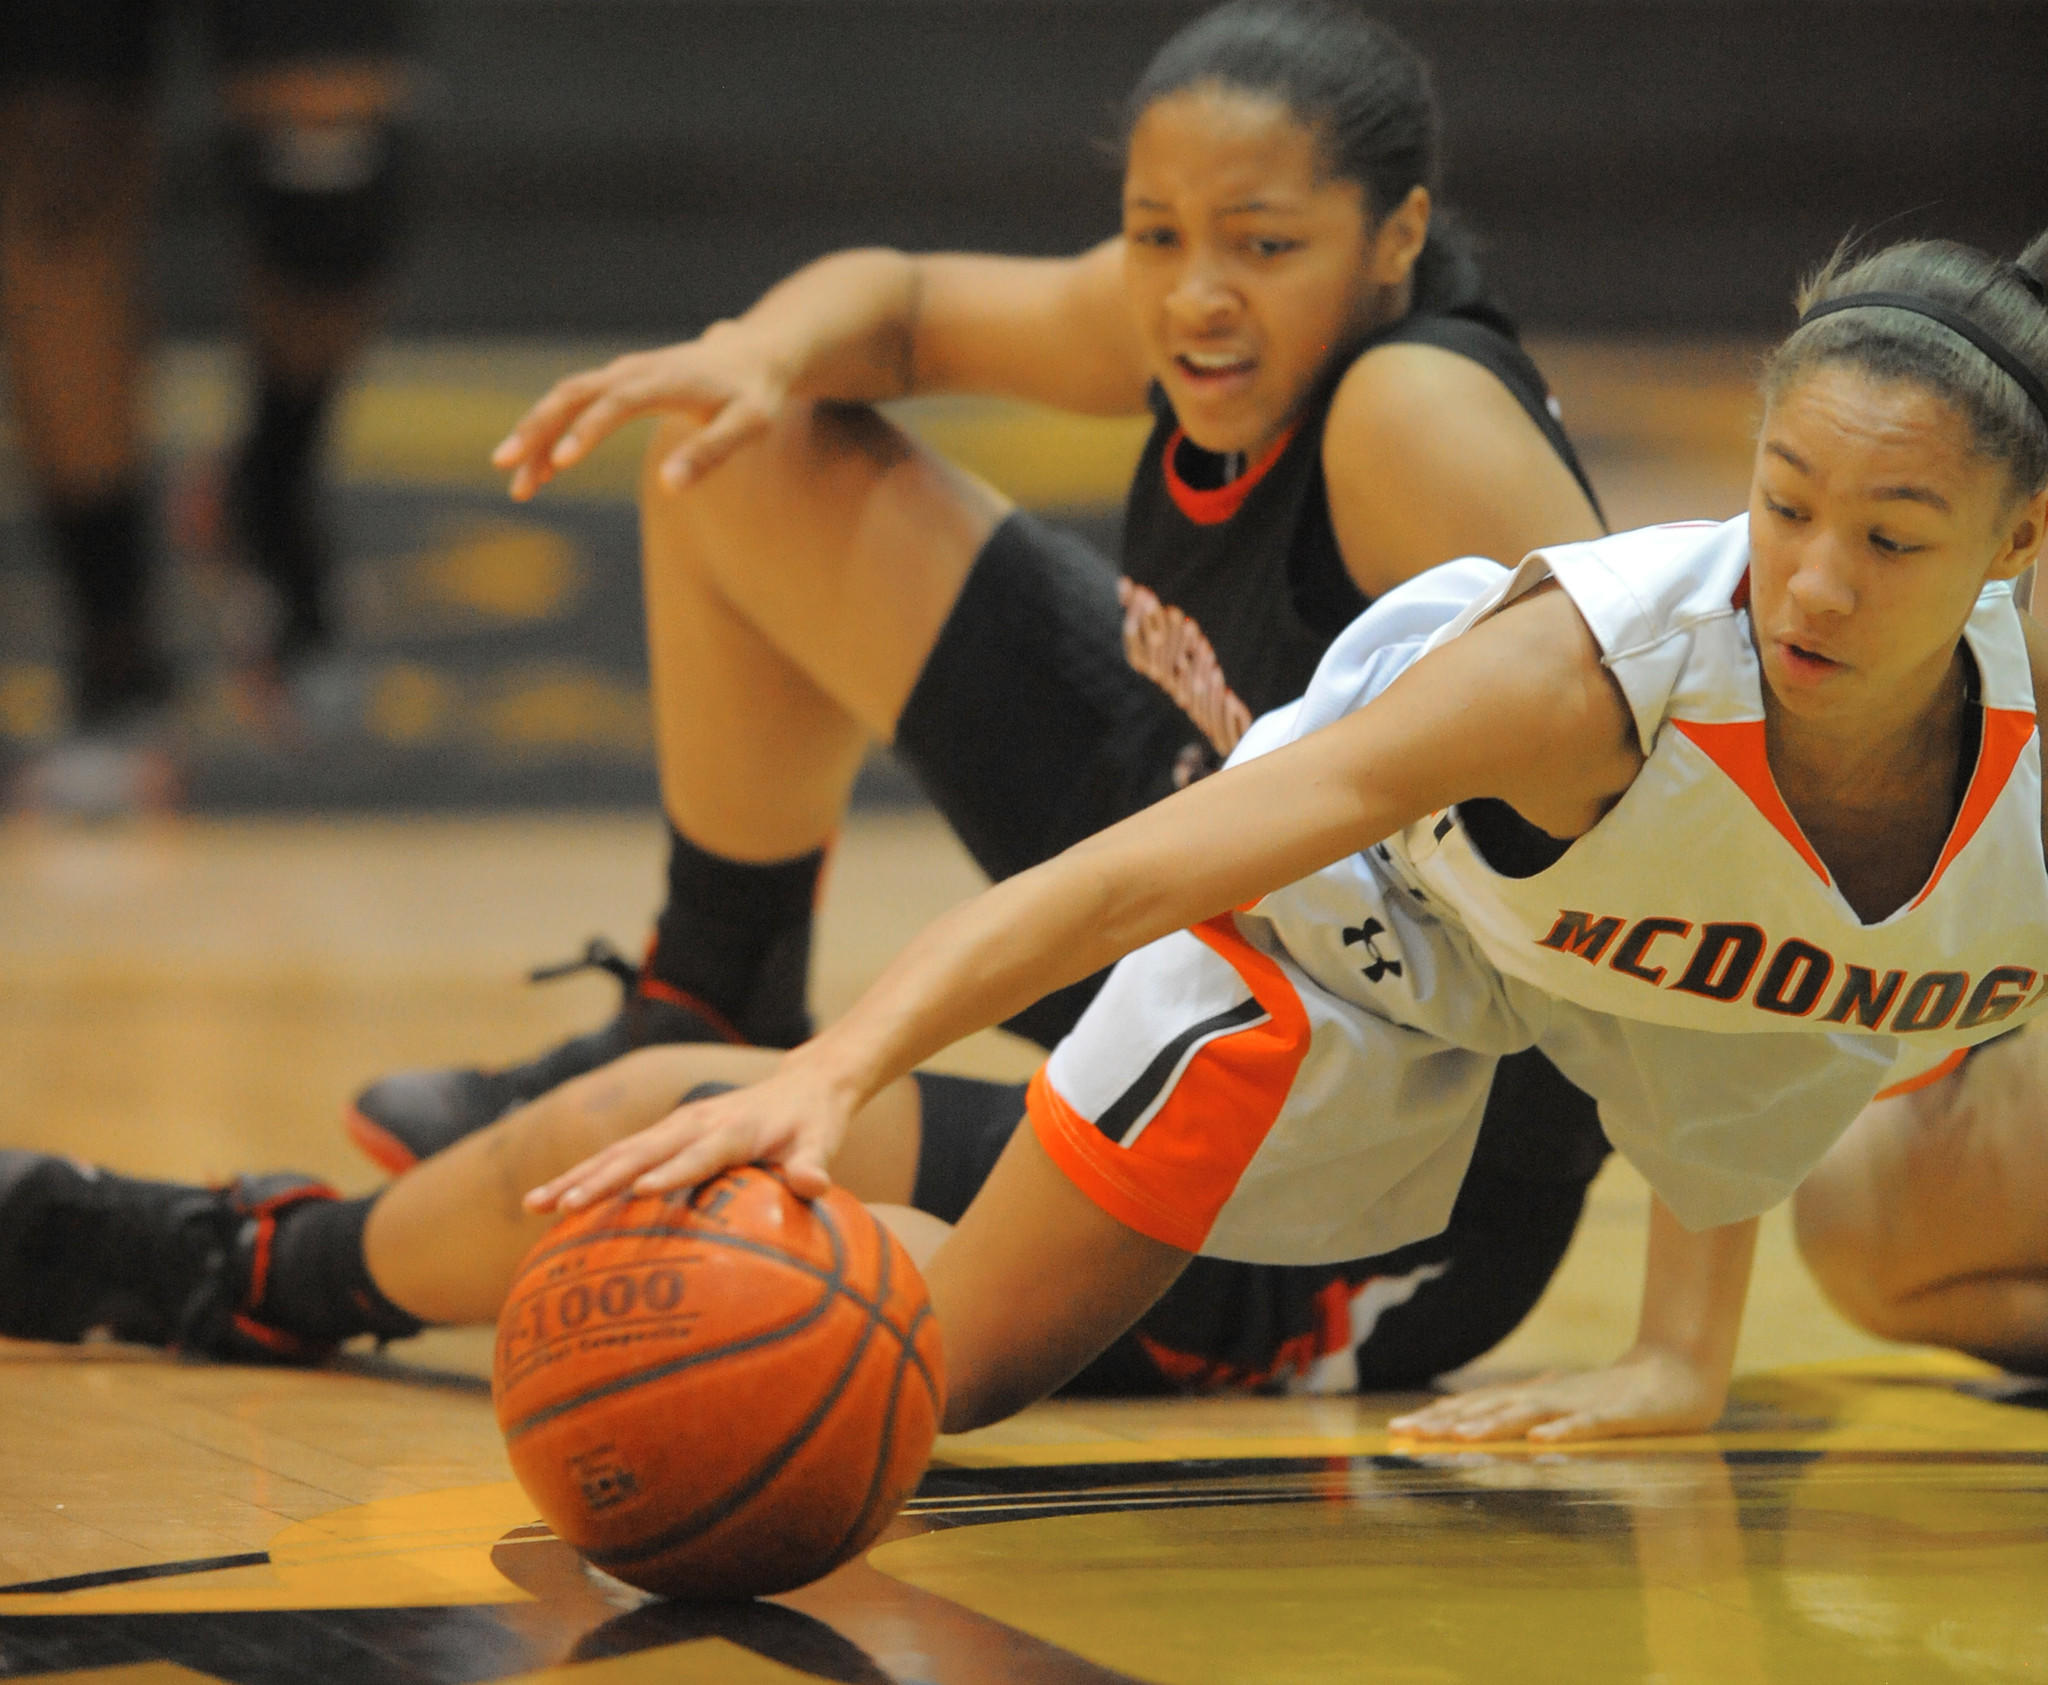 McDonogh's Danielle Edwards is among the All-IAAM girls basketball selections for this season.